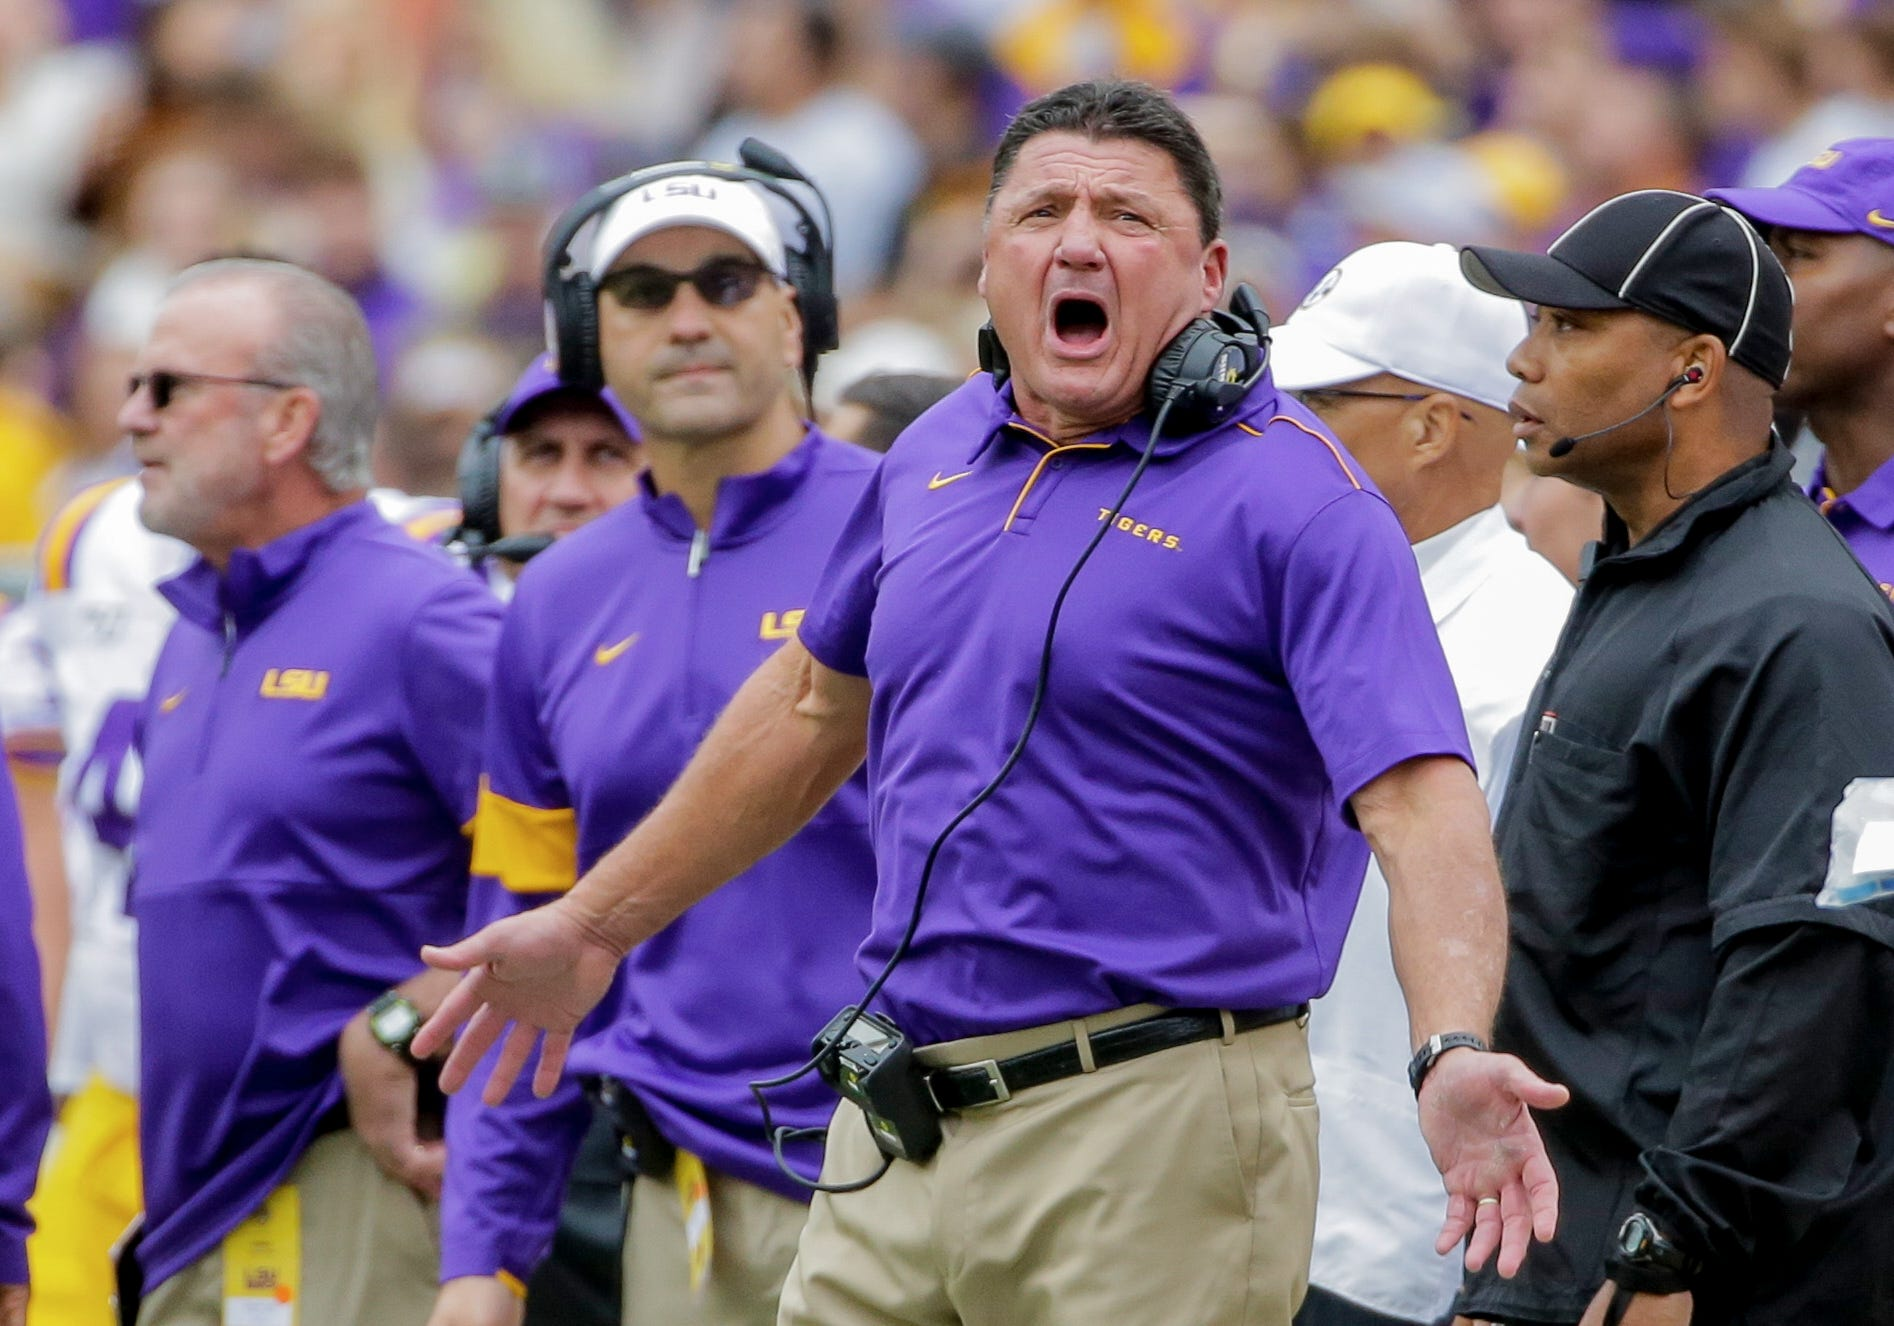 Reports: Ed Orgeron, LSU football parting ways; coach will be owed buyout of nearly $17.8 million